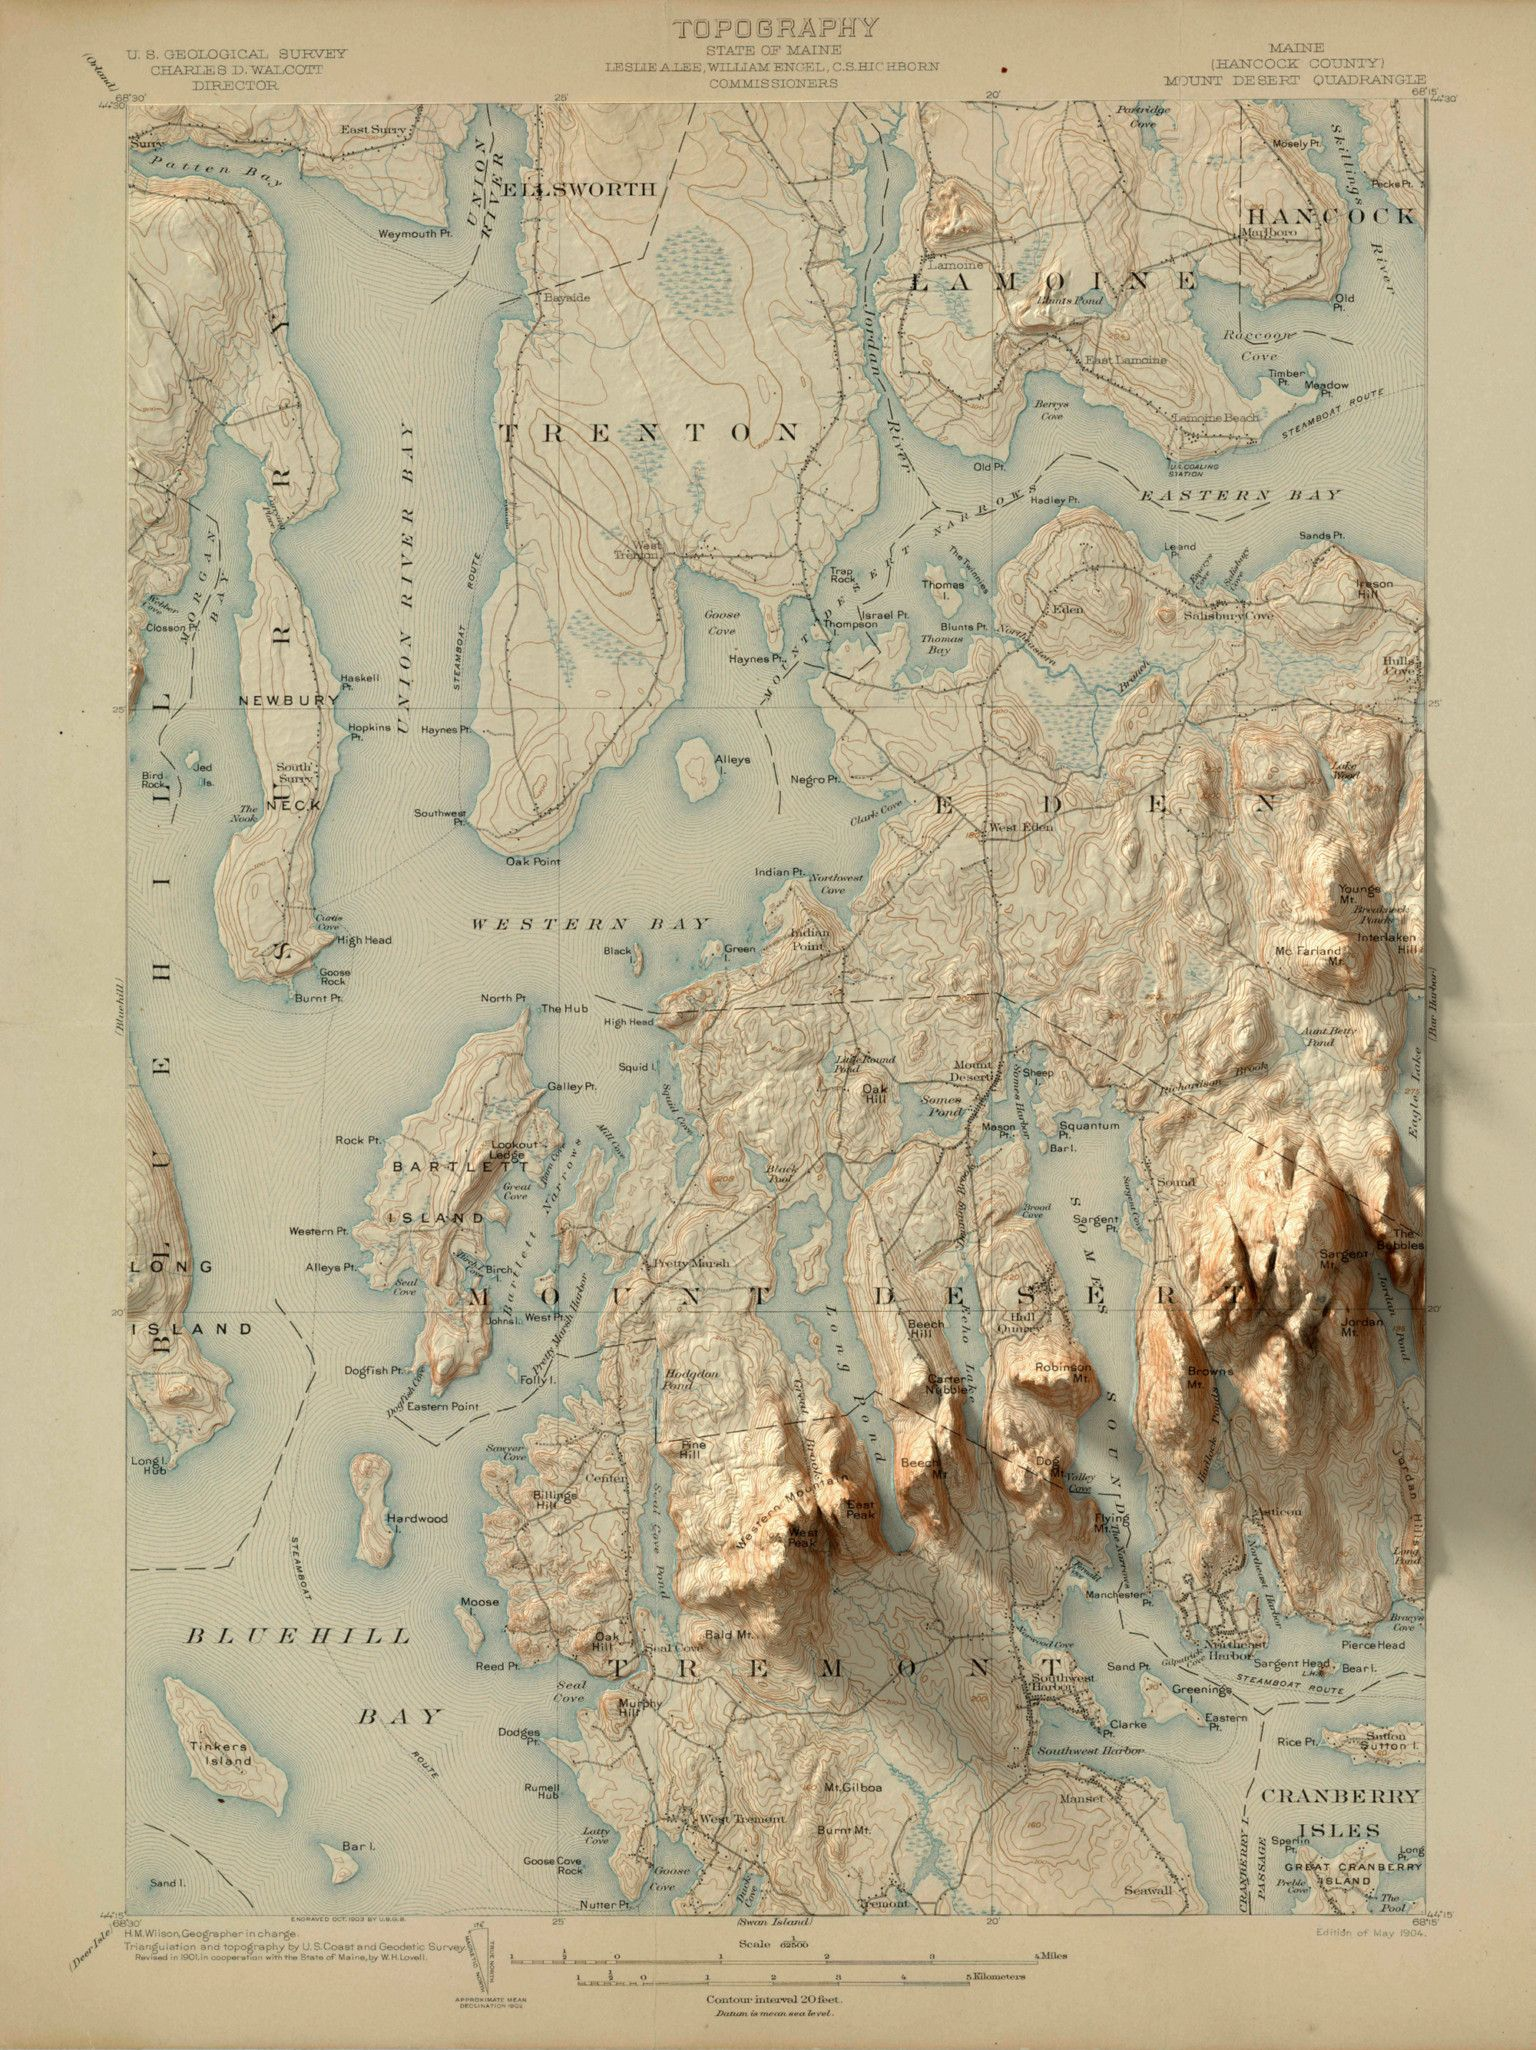 Contemporary Cartographic Explorations Fuse With Historic Maps In Digital Works By Scott Reinhard Map Artwork Vintage Maps Map Art